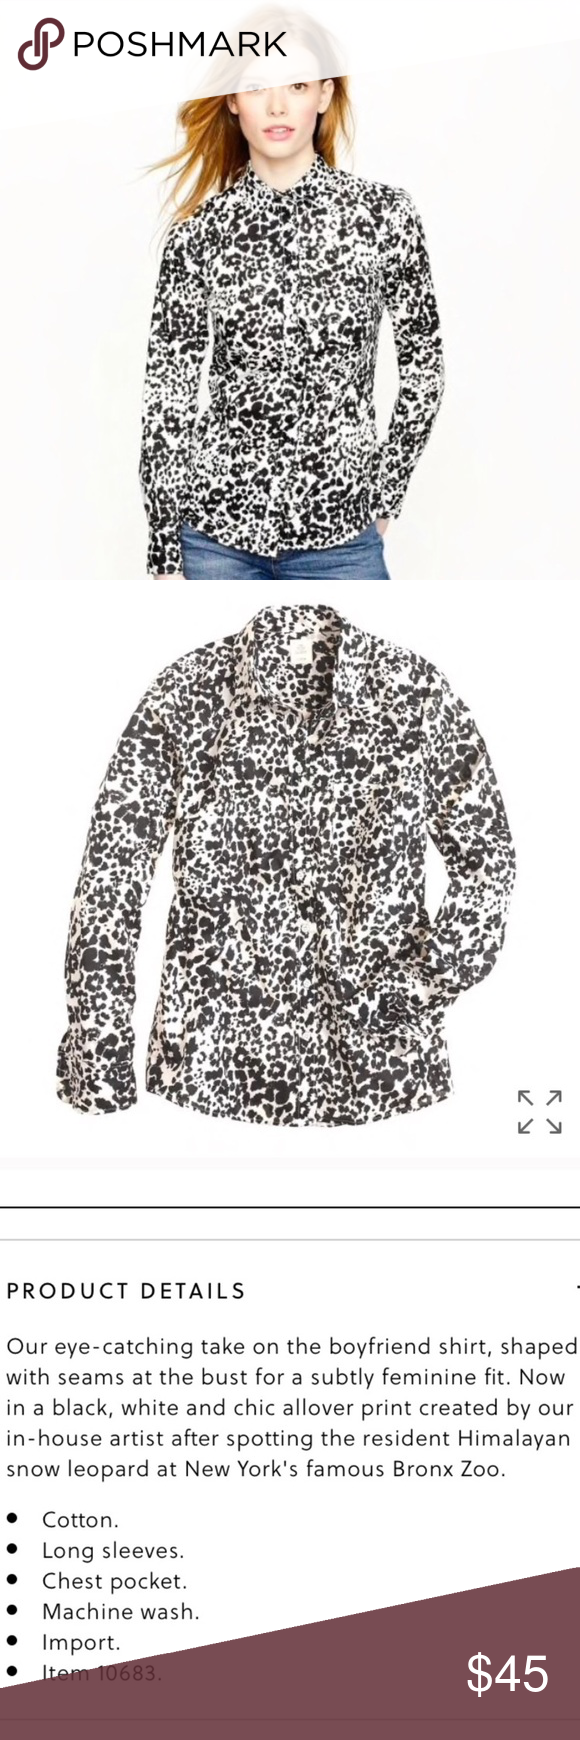 f7b1c609991 J. Crew boy shirt in snow cat leopard print J. Crew button down shirt - boy  fit - in snow cat / leopard / cheetah print. Excellent condition, no flaws  to ...